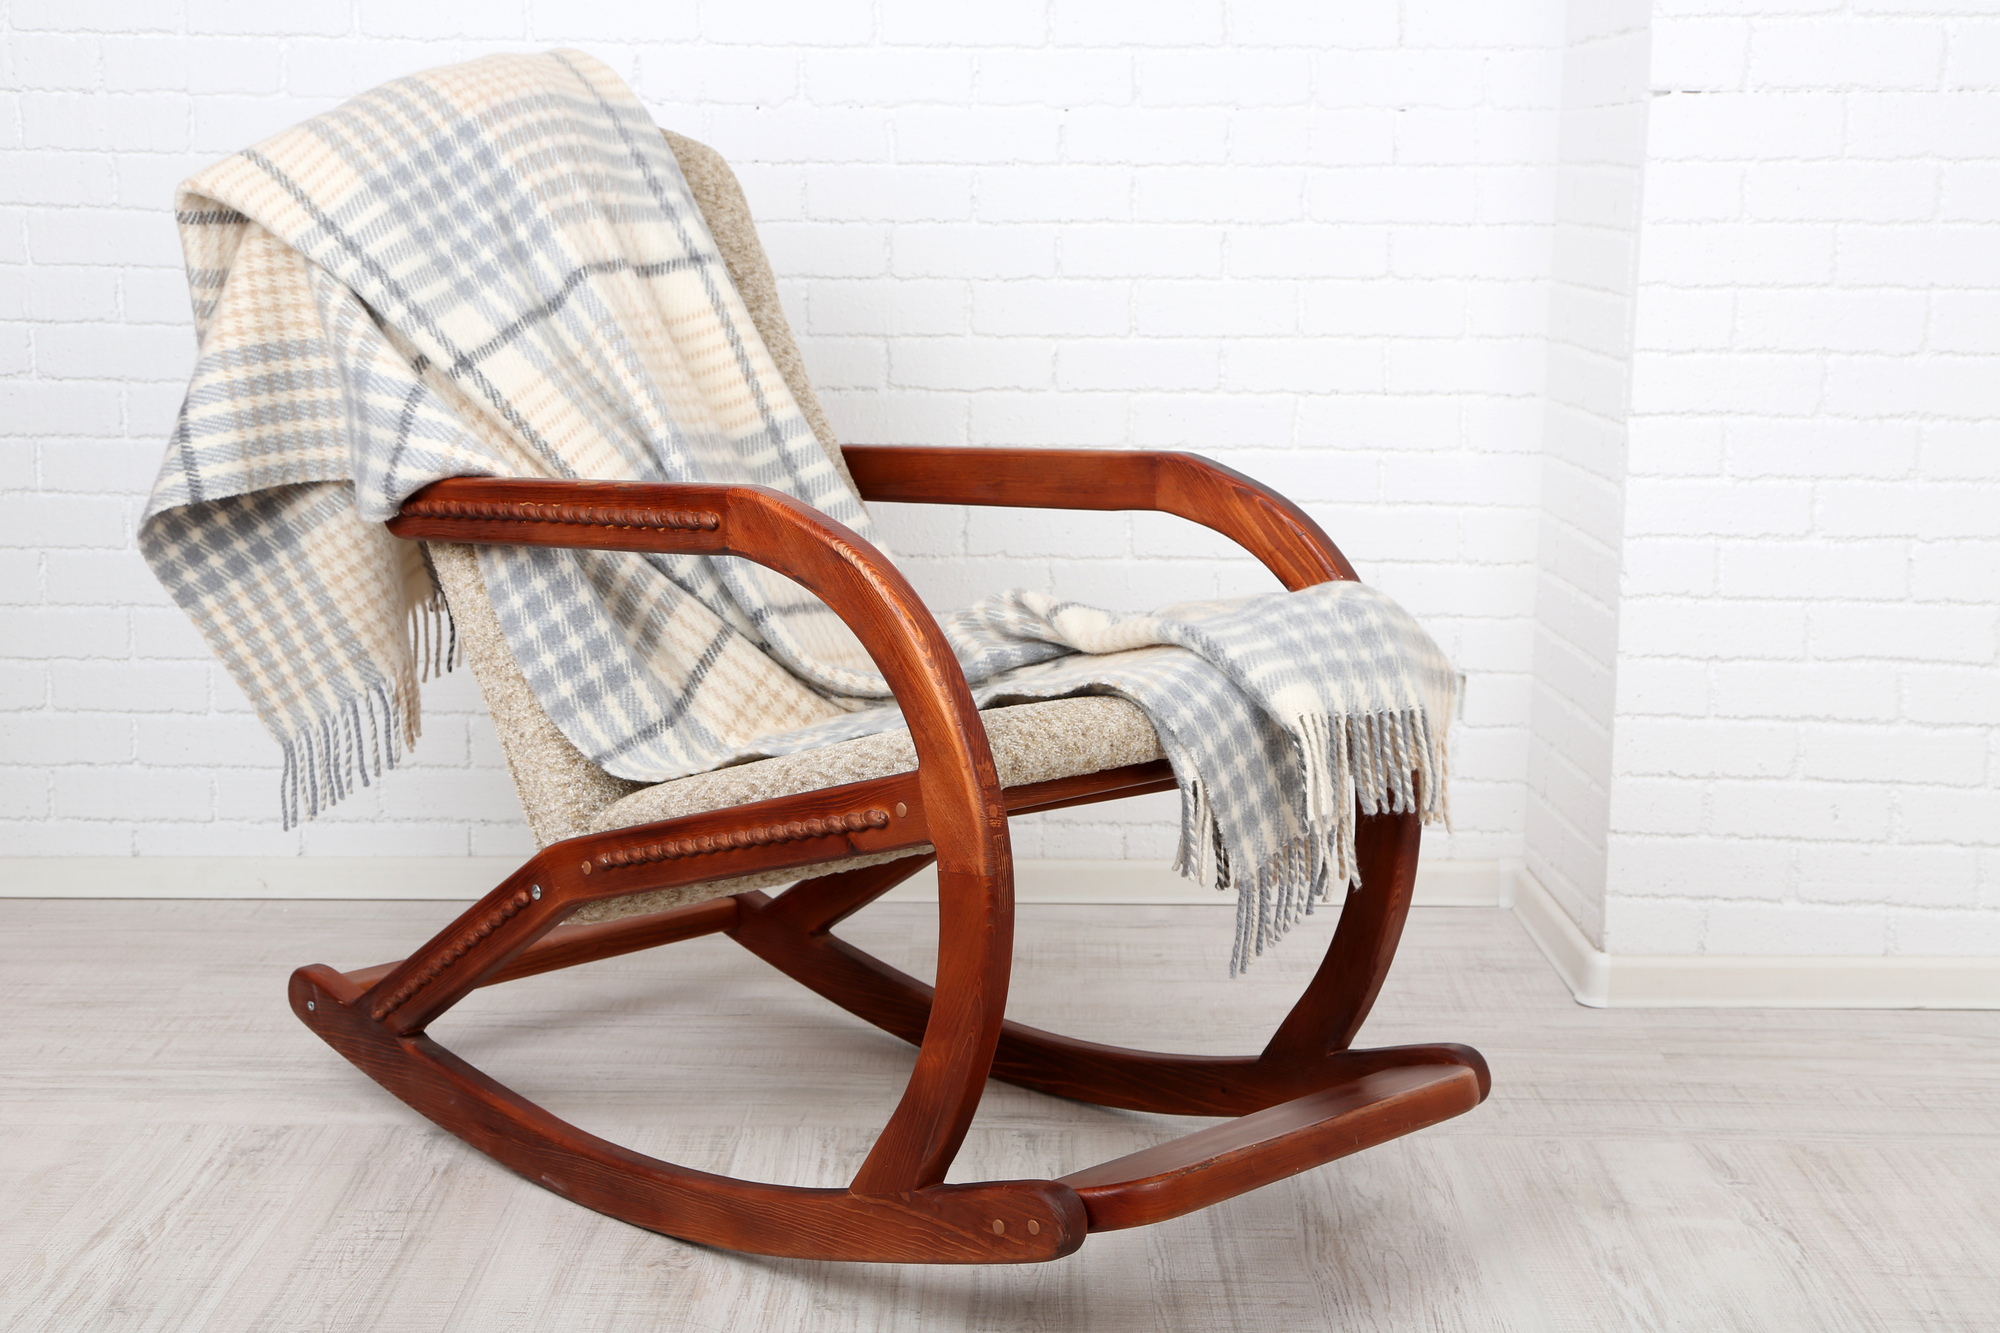 A rocking chair is used as a metaphor for self motivation